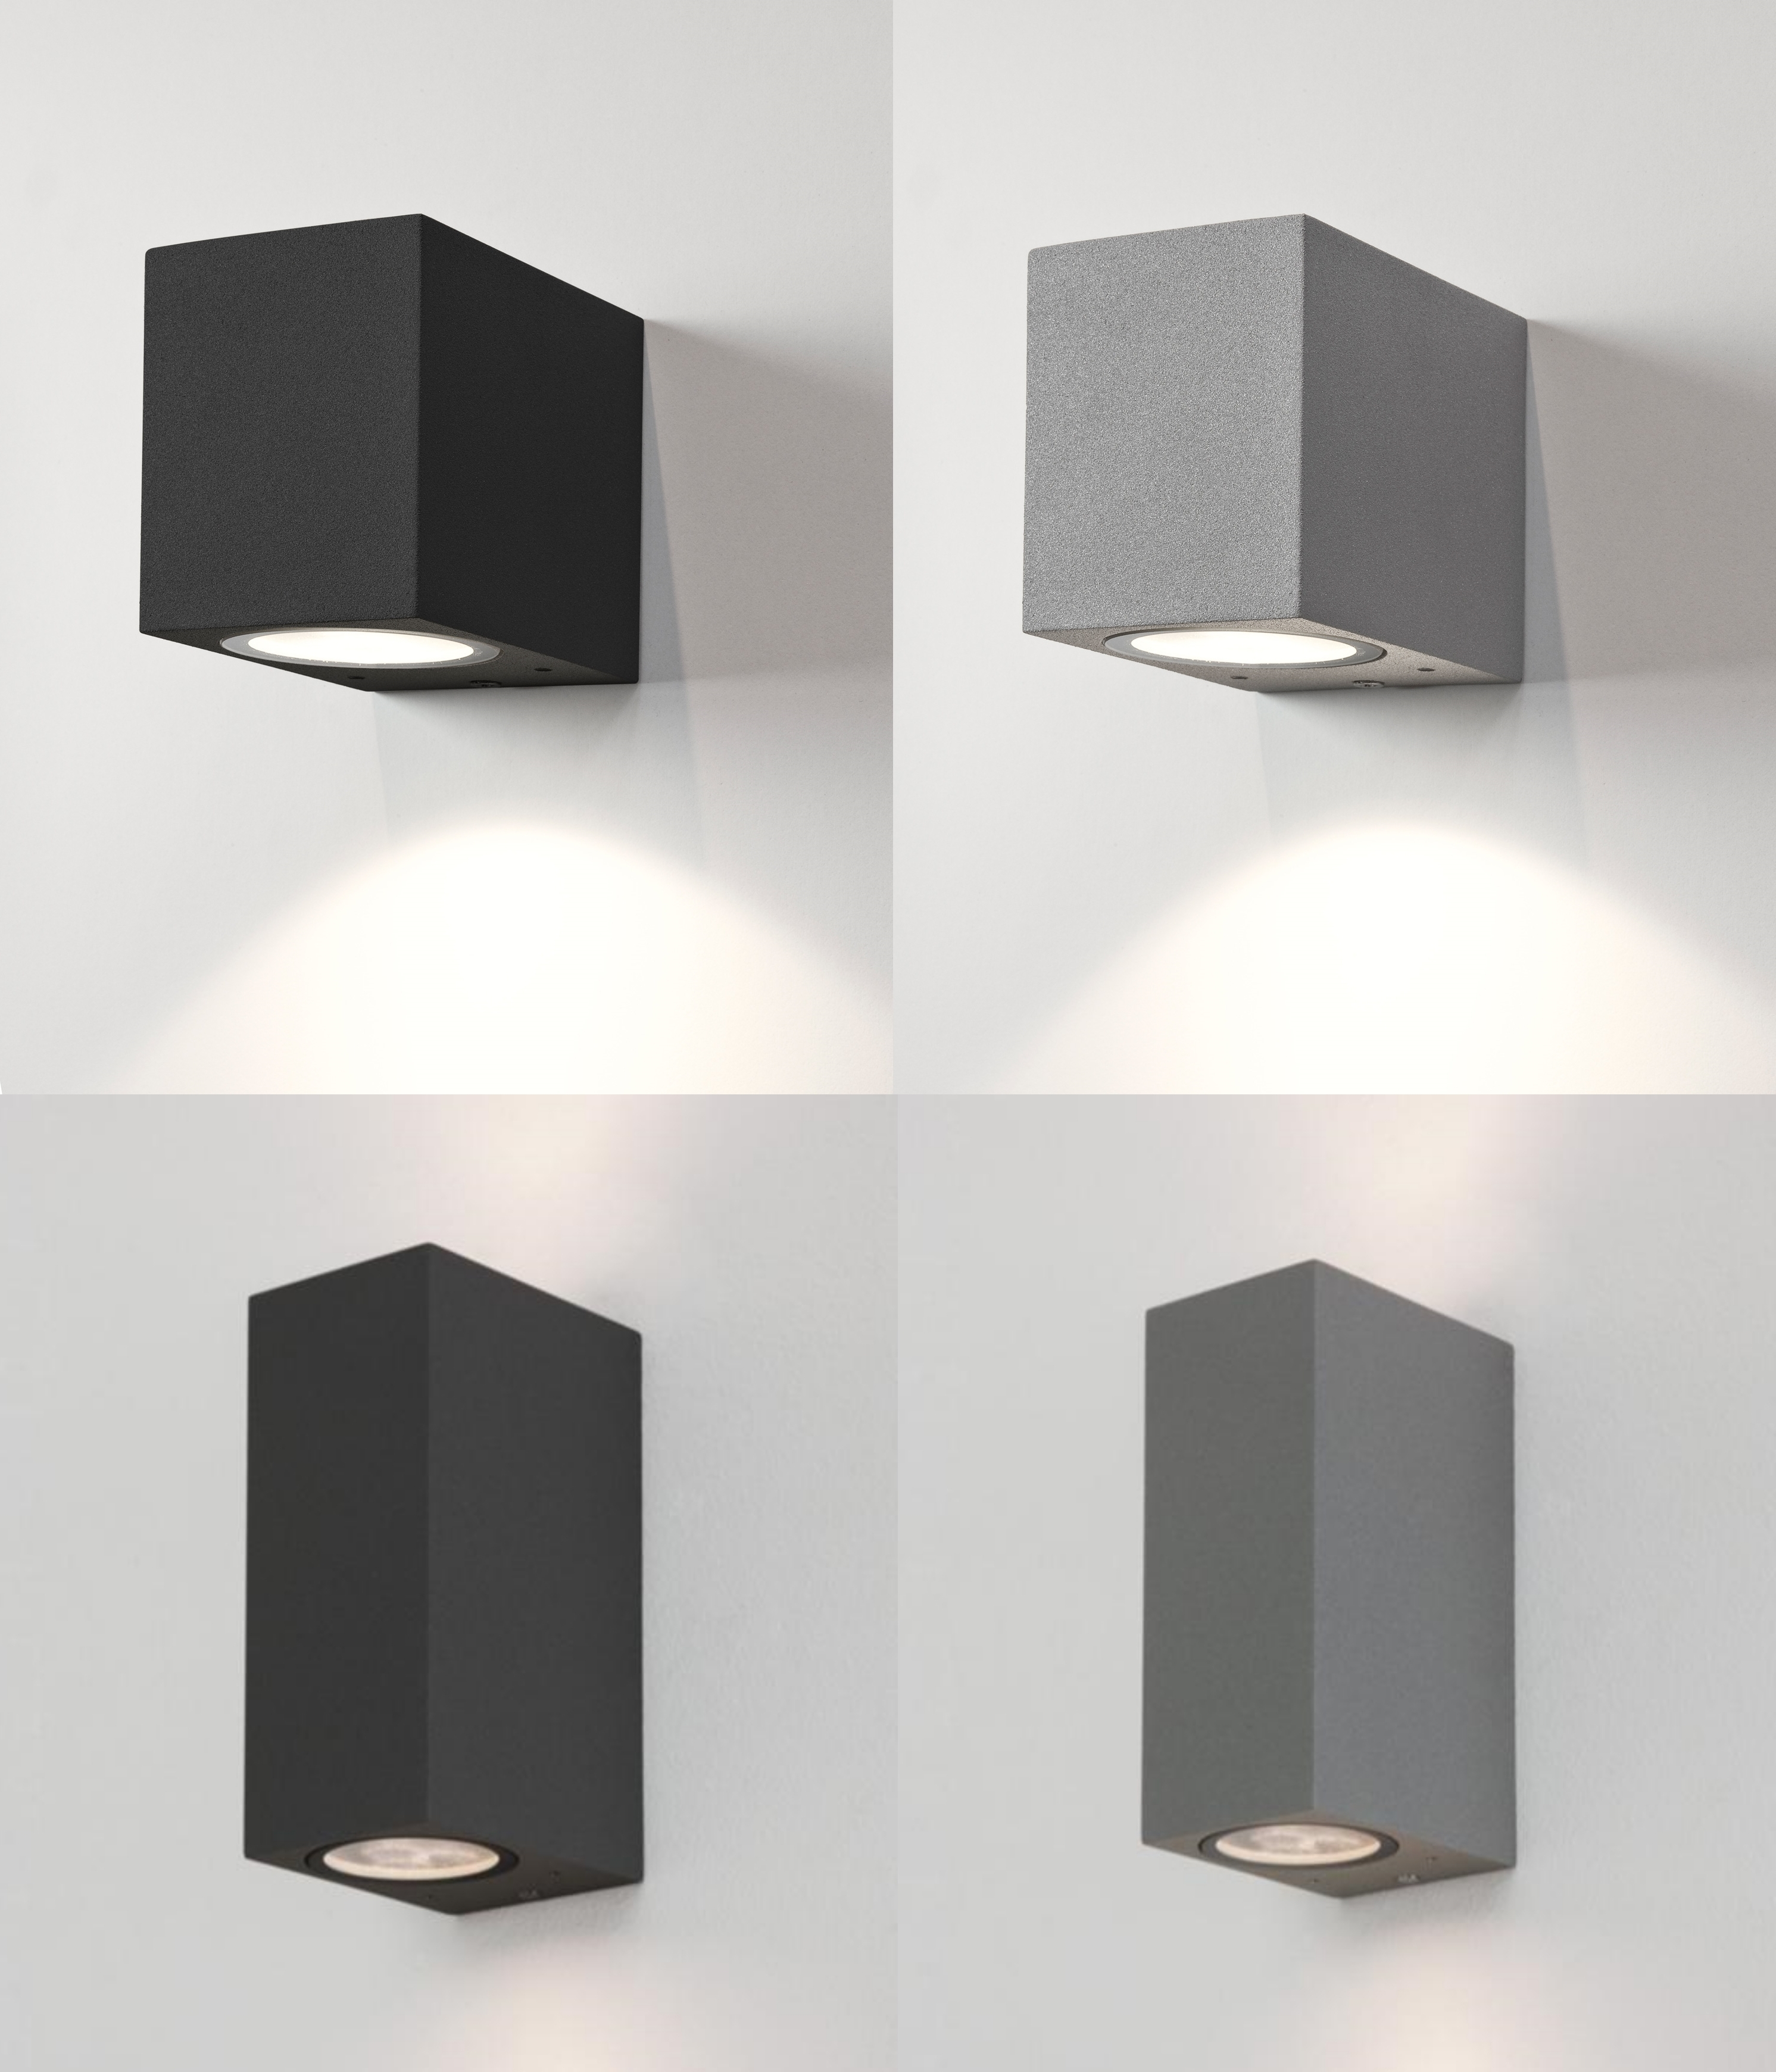 Outdoor Wall Lighting At Ebay Within 2019 Home Decor: Alluring Outdoor Wall Lights Plus Astro Chios External (View 8 of 20)